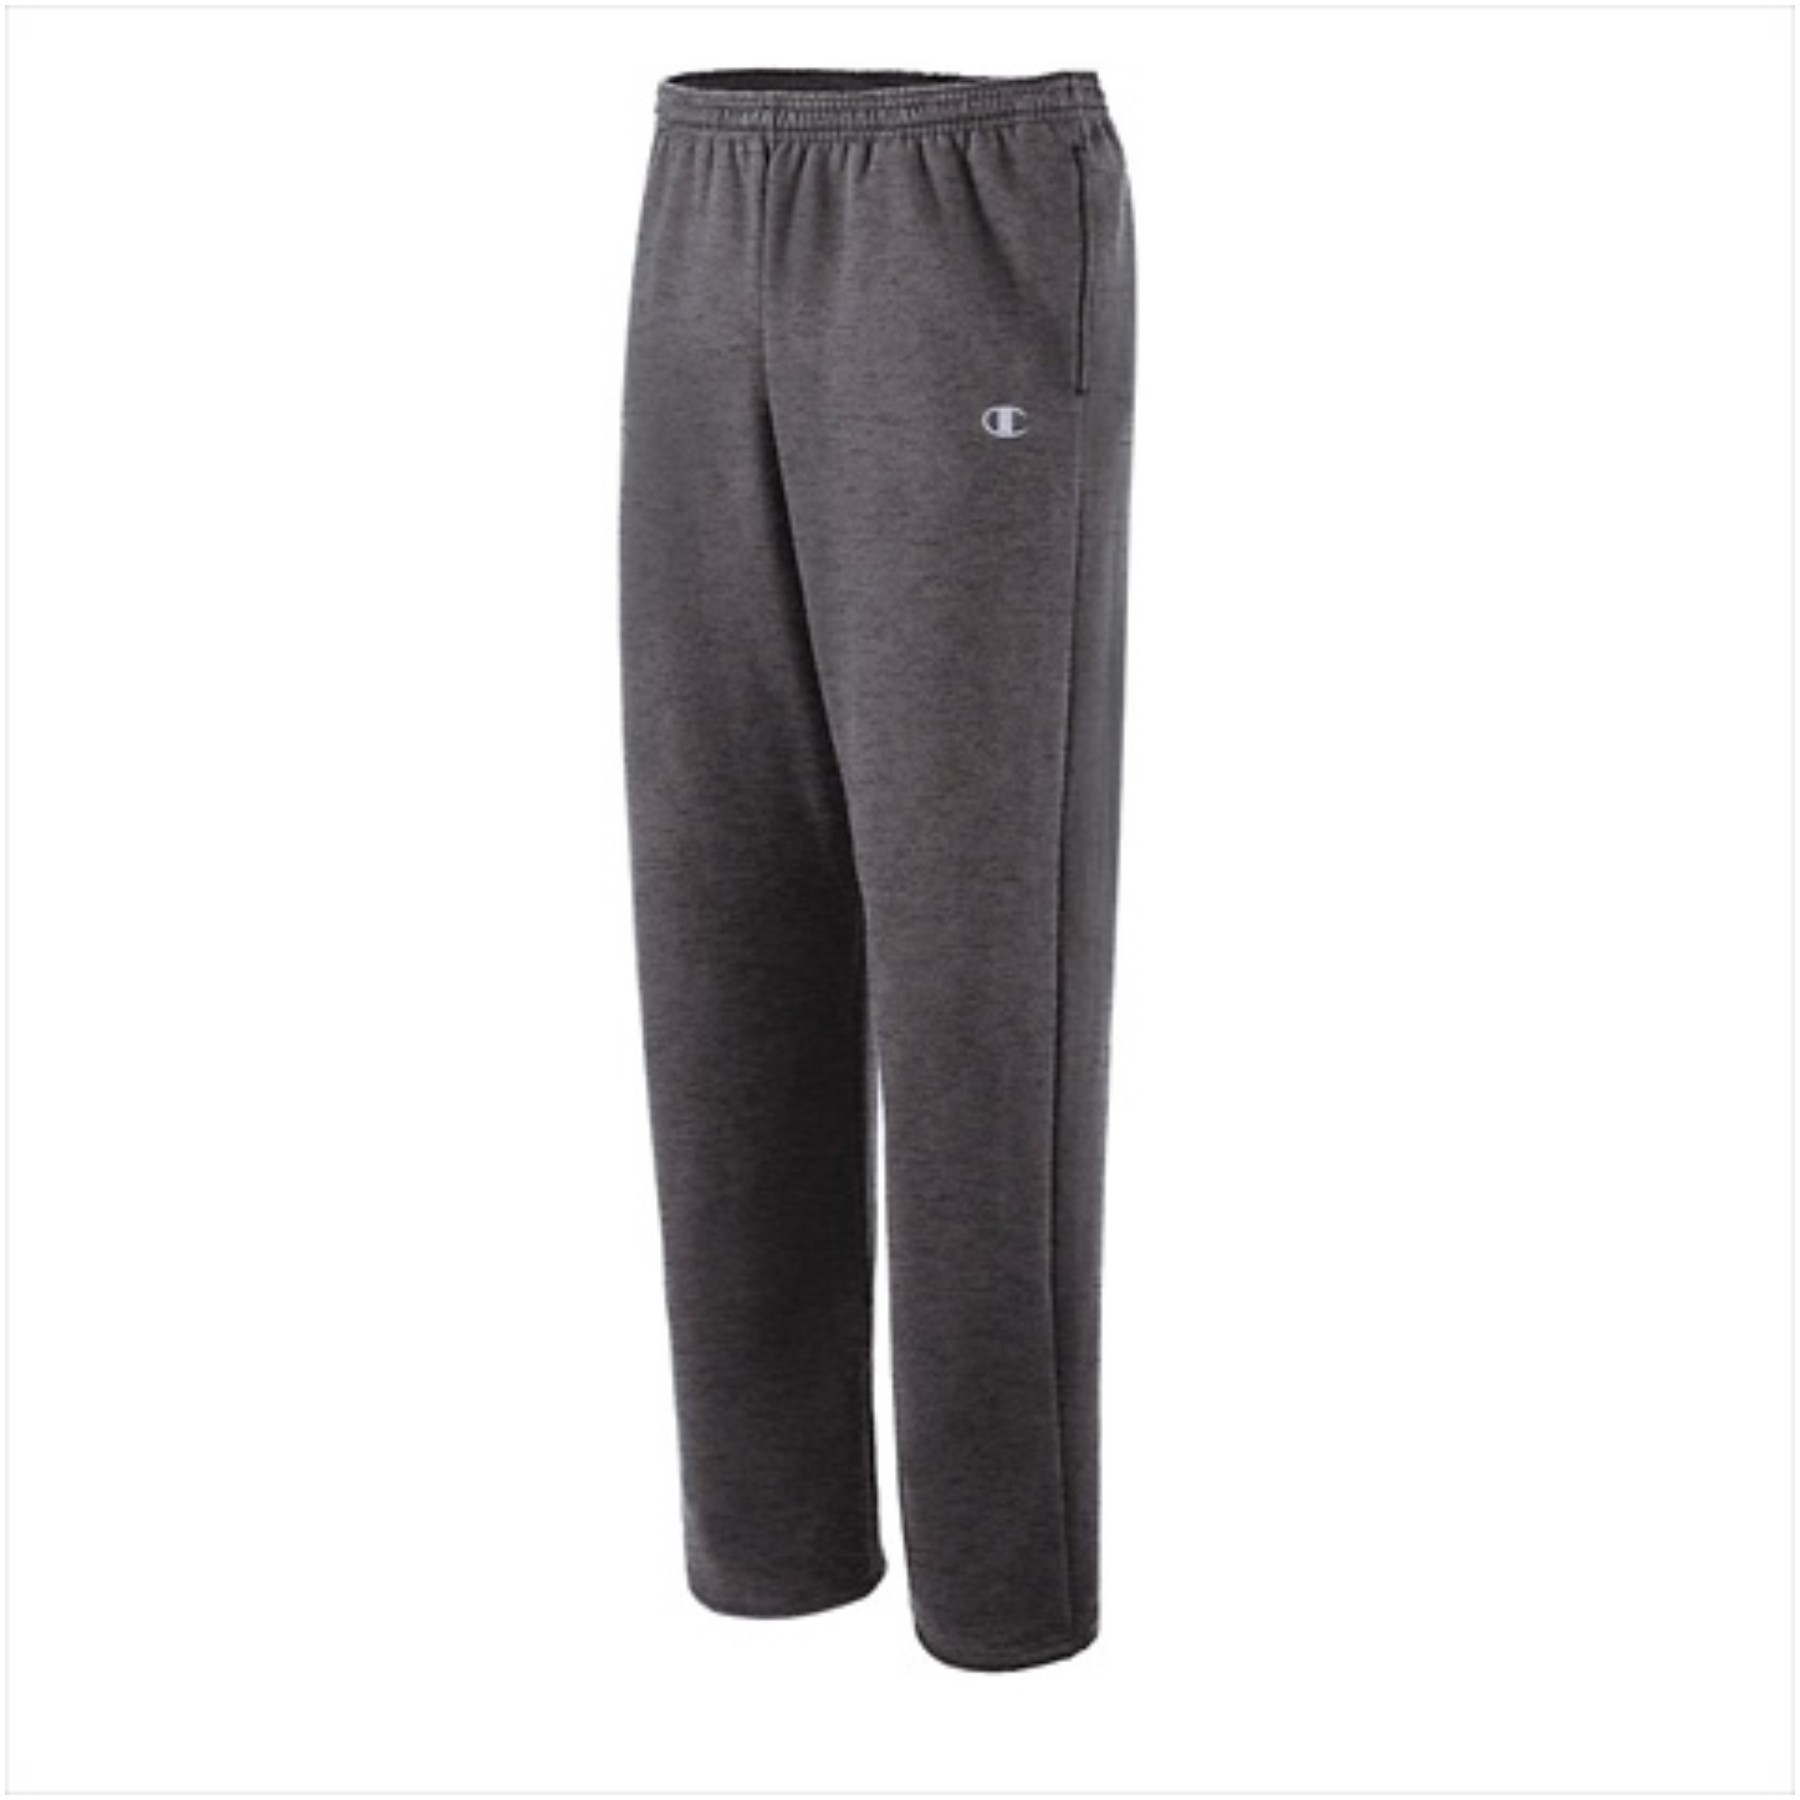 Hanes P2469 Champion Eco Fleece Open-Hem Mens Sweatpants Size Small Granite Heather 00011919619993